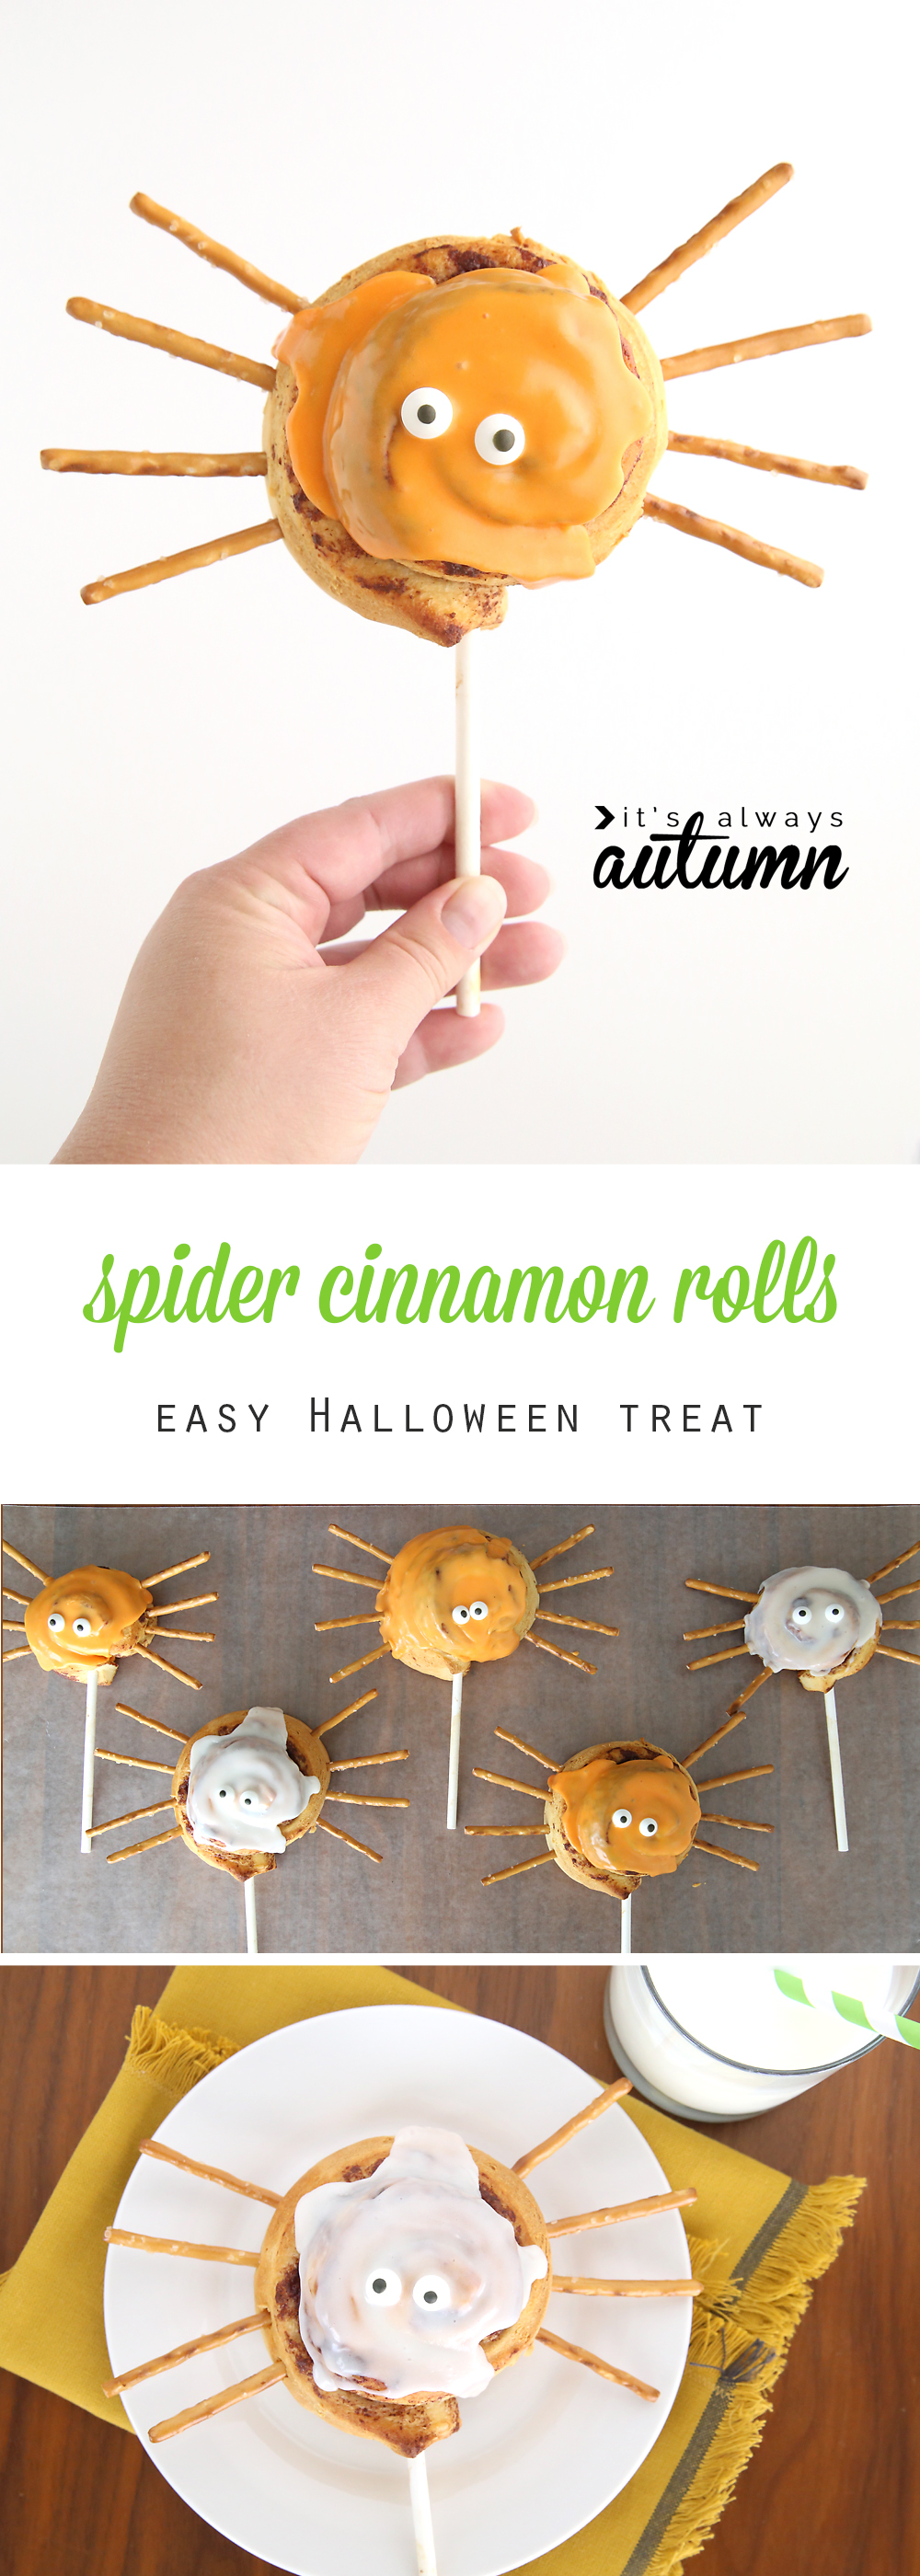 What a fun idea for a Halloween treat! Easy spider cinnamon roll pops. Cute Halloween breakfast idea to make with the kids.